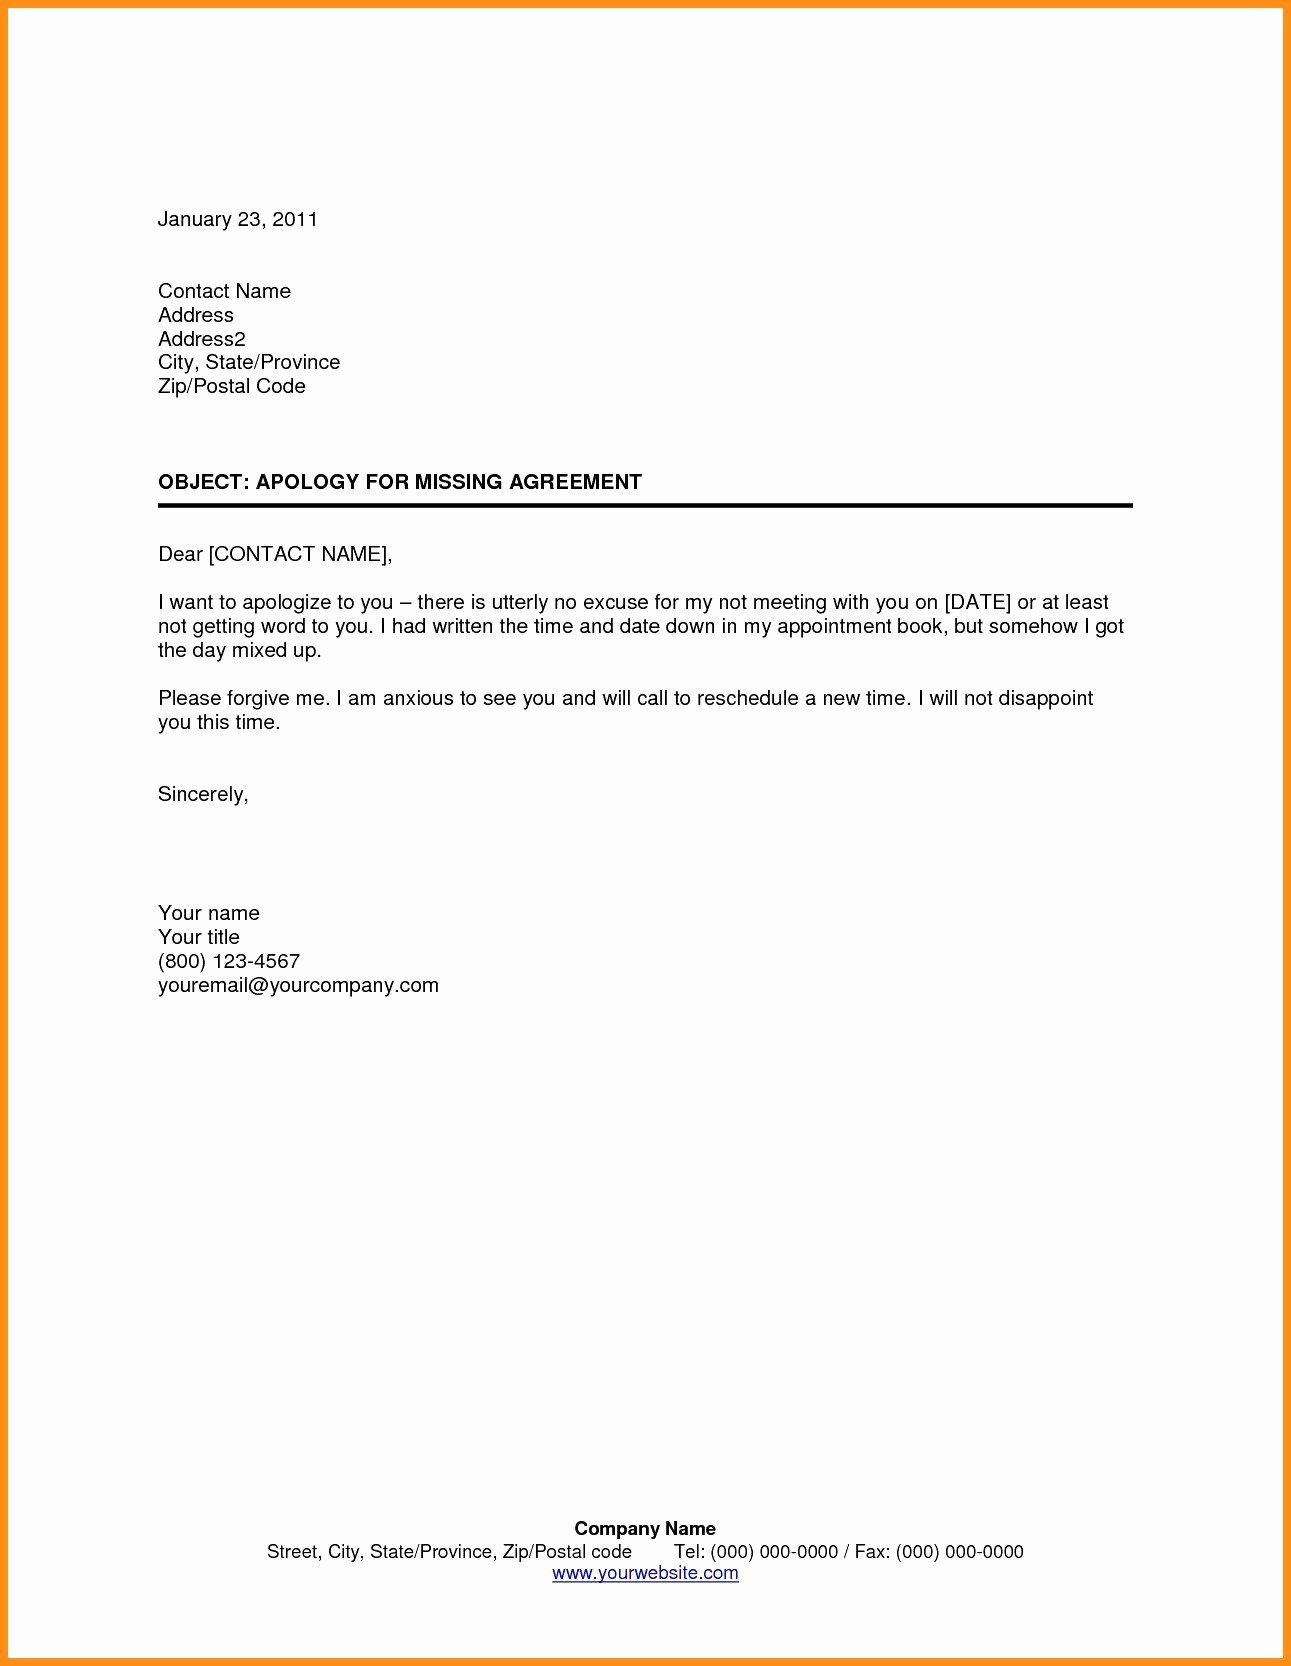 Patient Missed Appointment Letter Template Beautiful Patient Missed Appointment Letter Template Collection